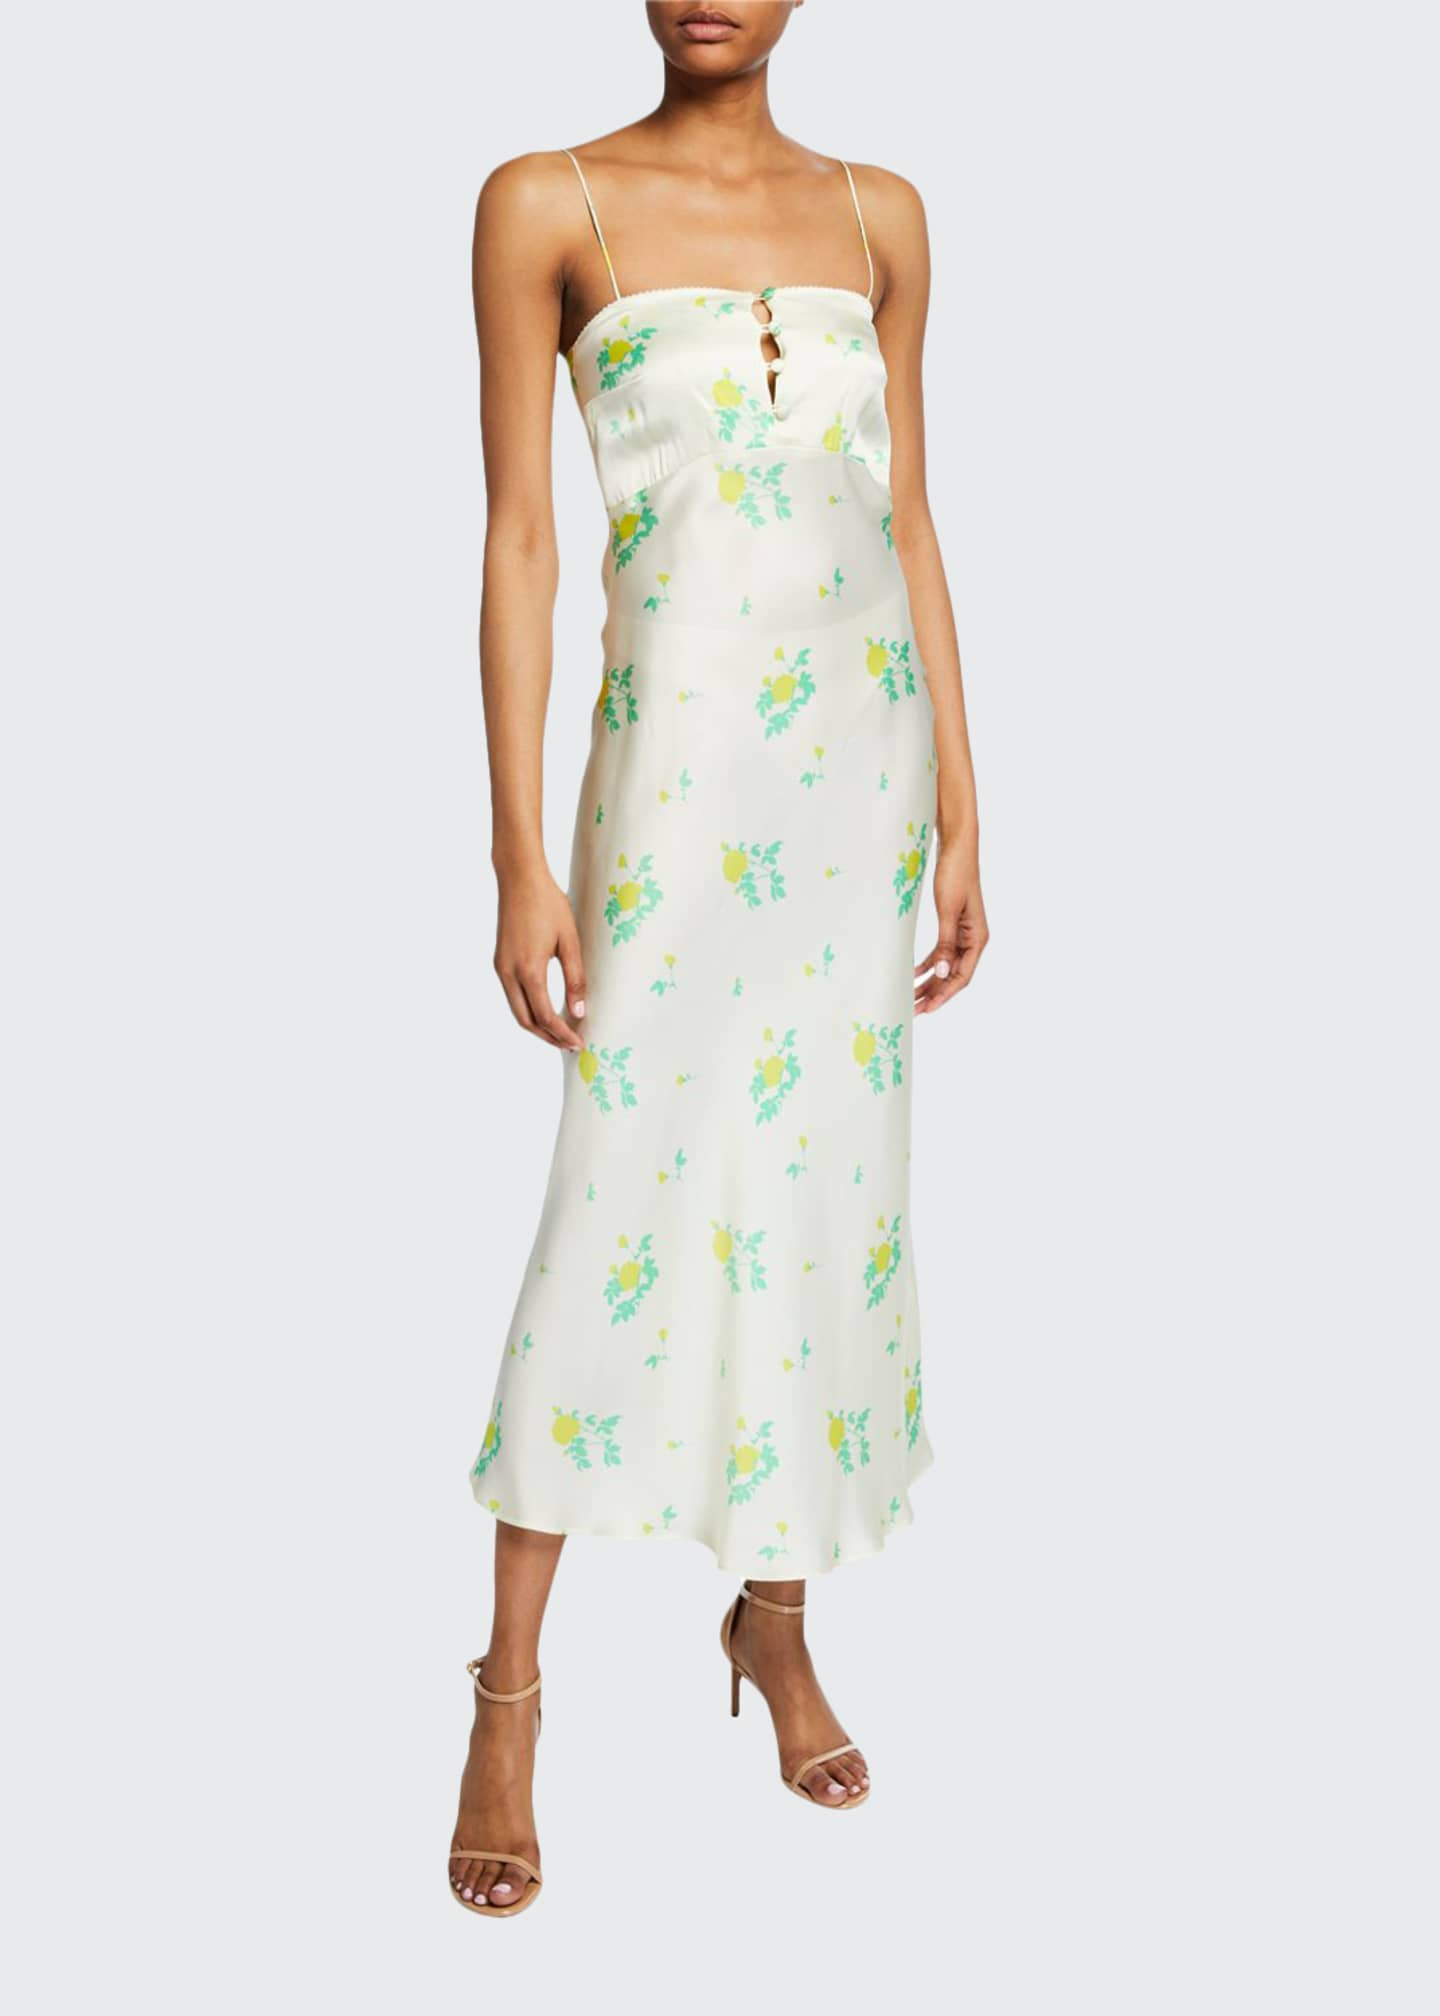 BERNADETTE Florence Floral-Print Silk Cocktail Dress